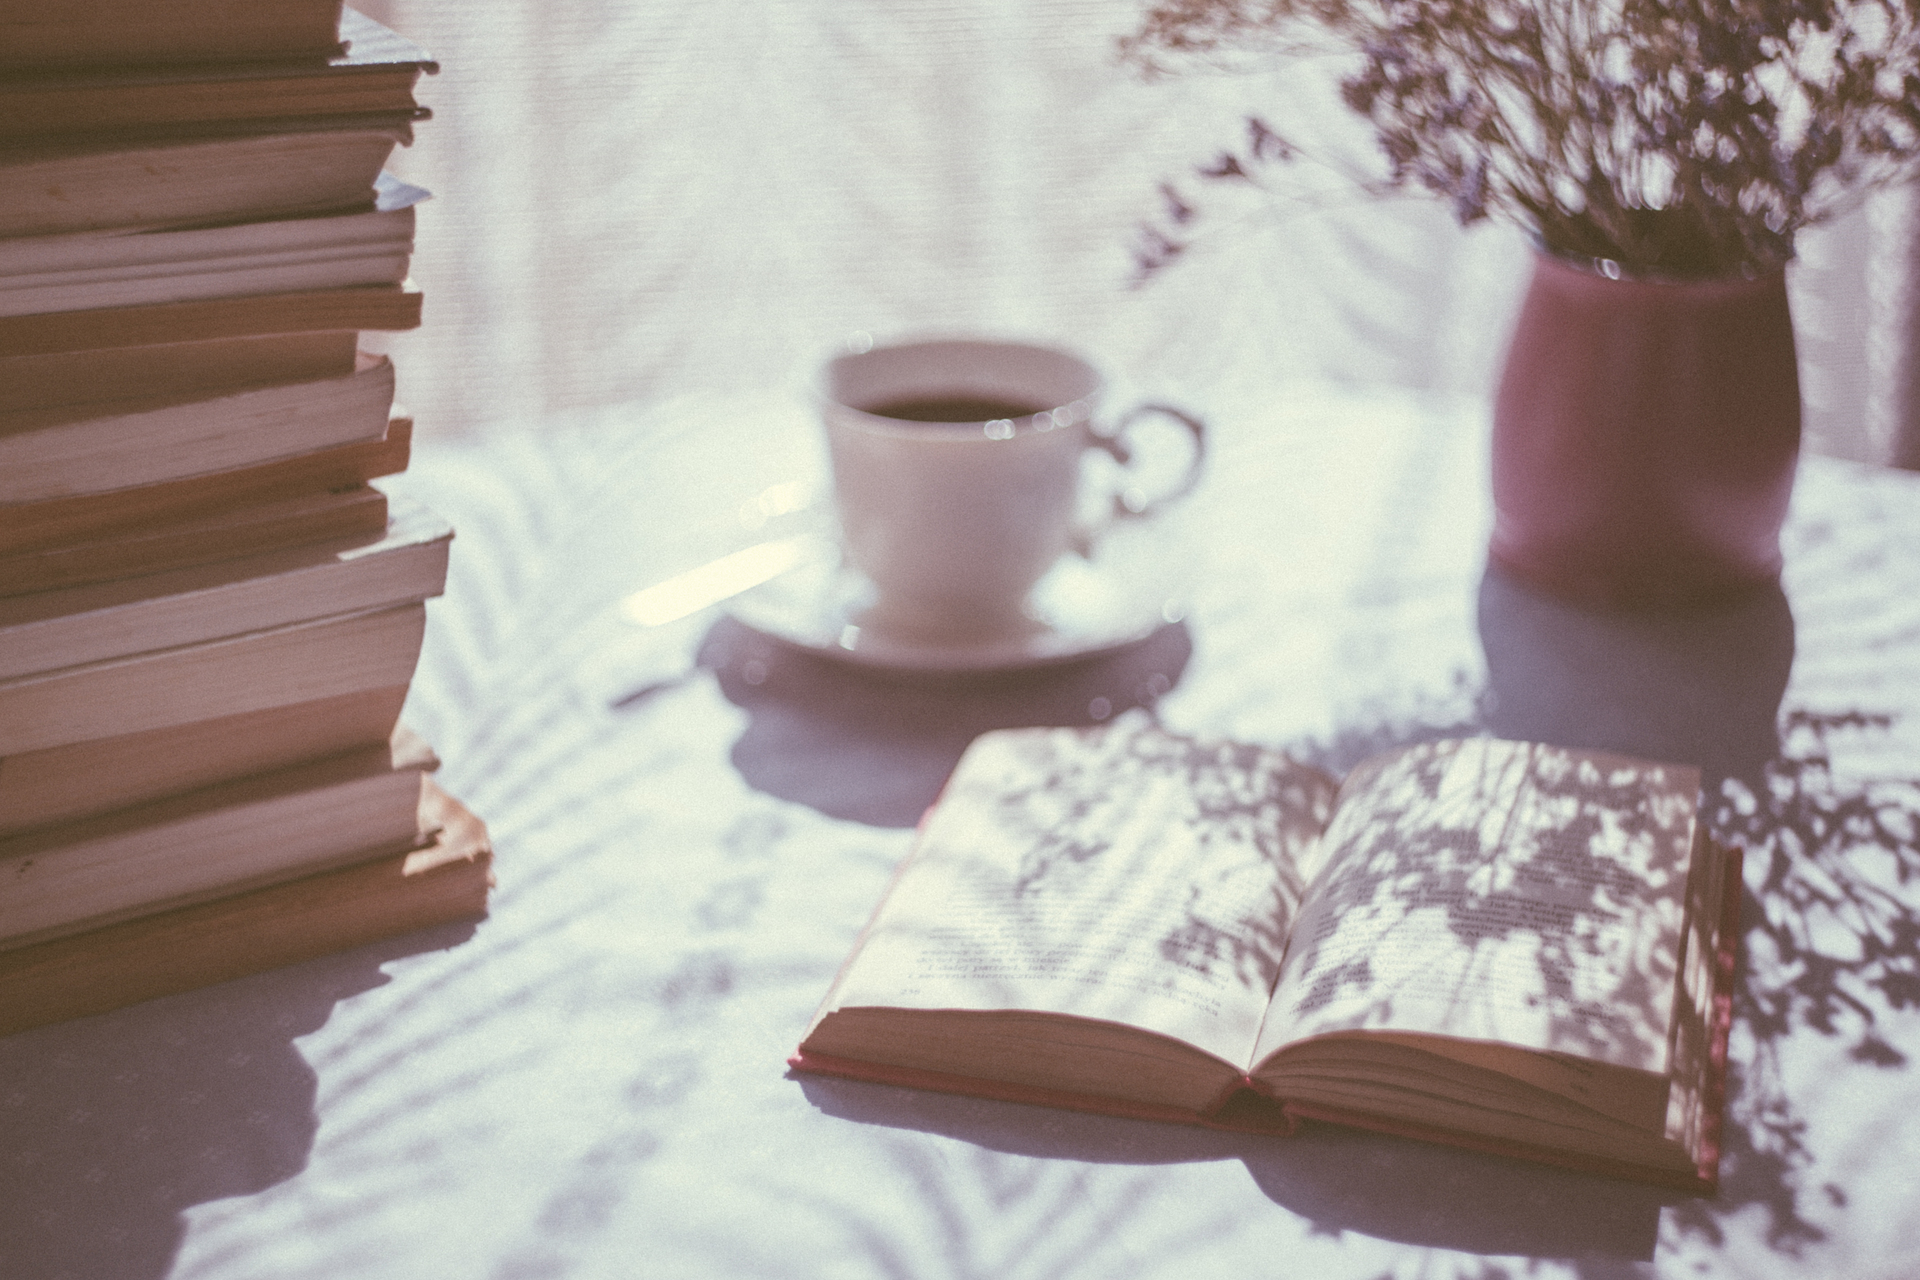 coffe and books